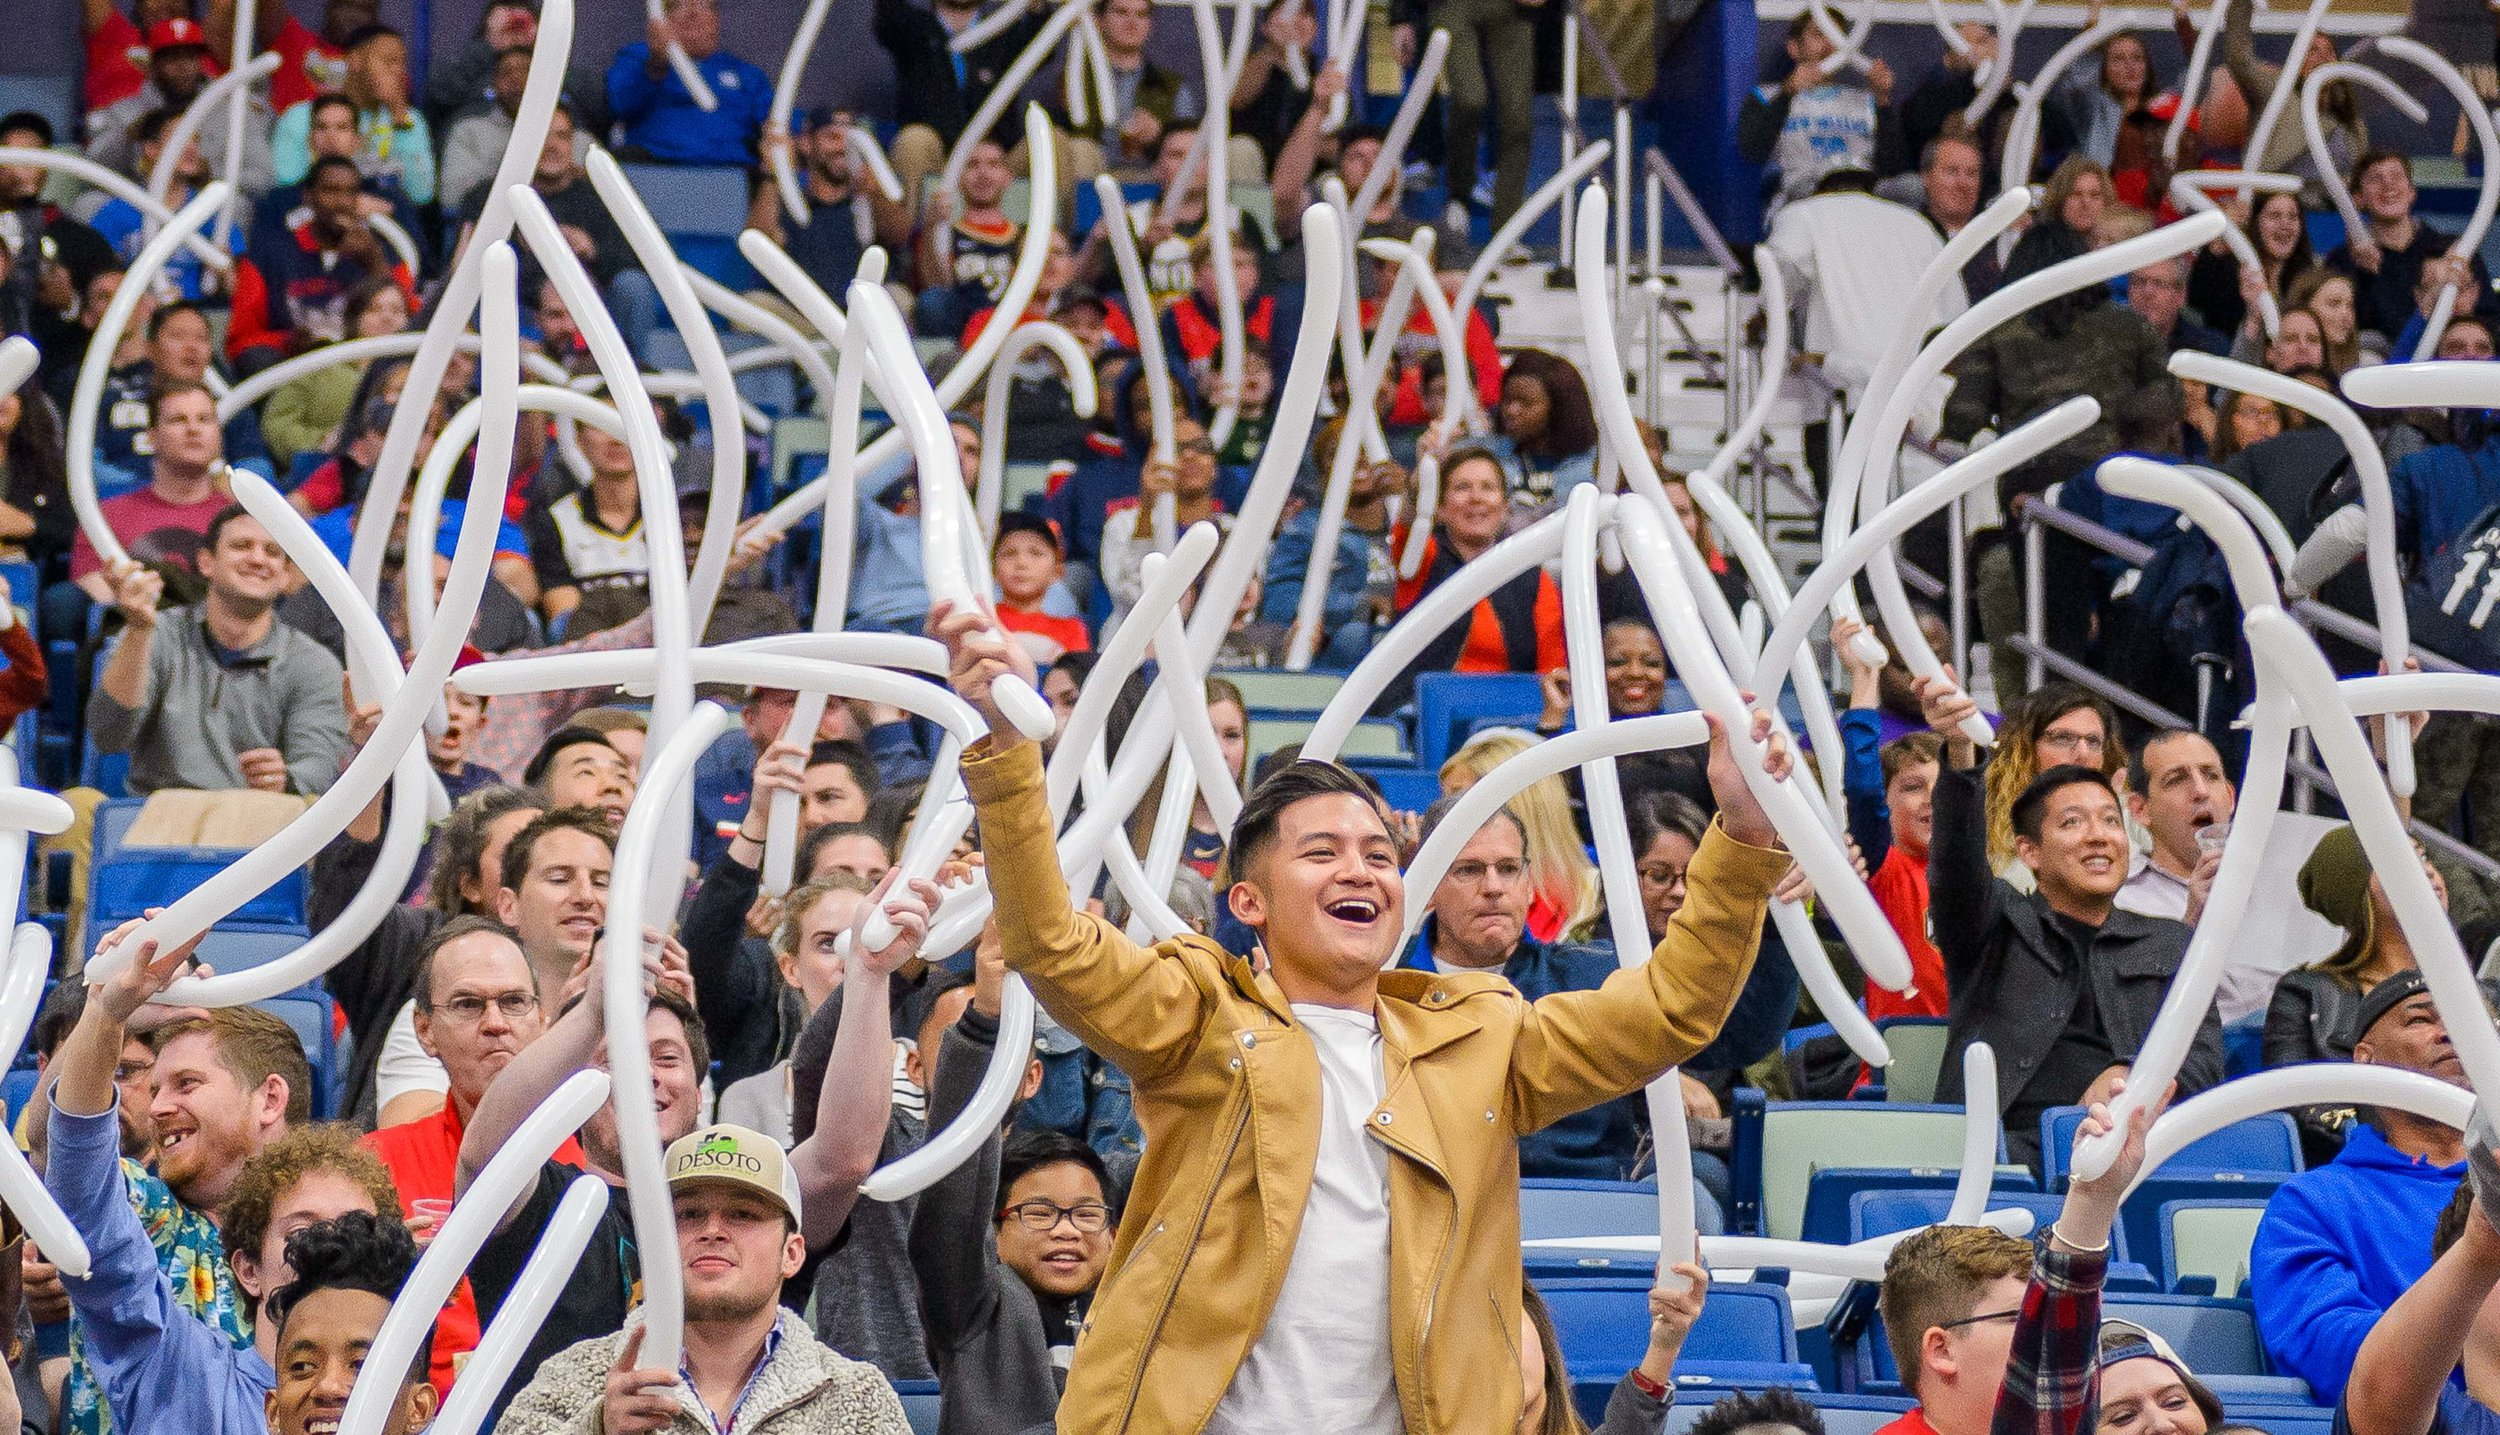 New OrleansPelicans fans wave balloons as they cheer during the first half of an NBA basketball game against the Denver Nuggets in the Smoothie King Center in New Orleans, La. Monday, Nov. 17, 2018. ThePelicanswon, 125-115.